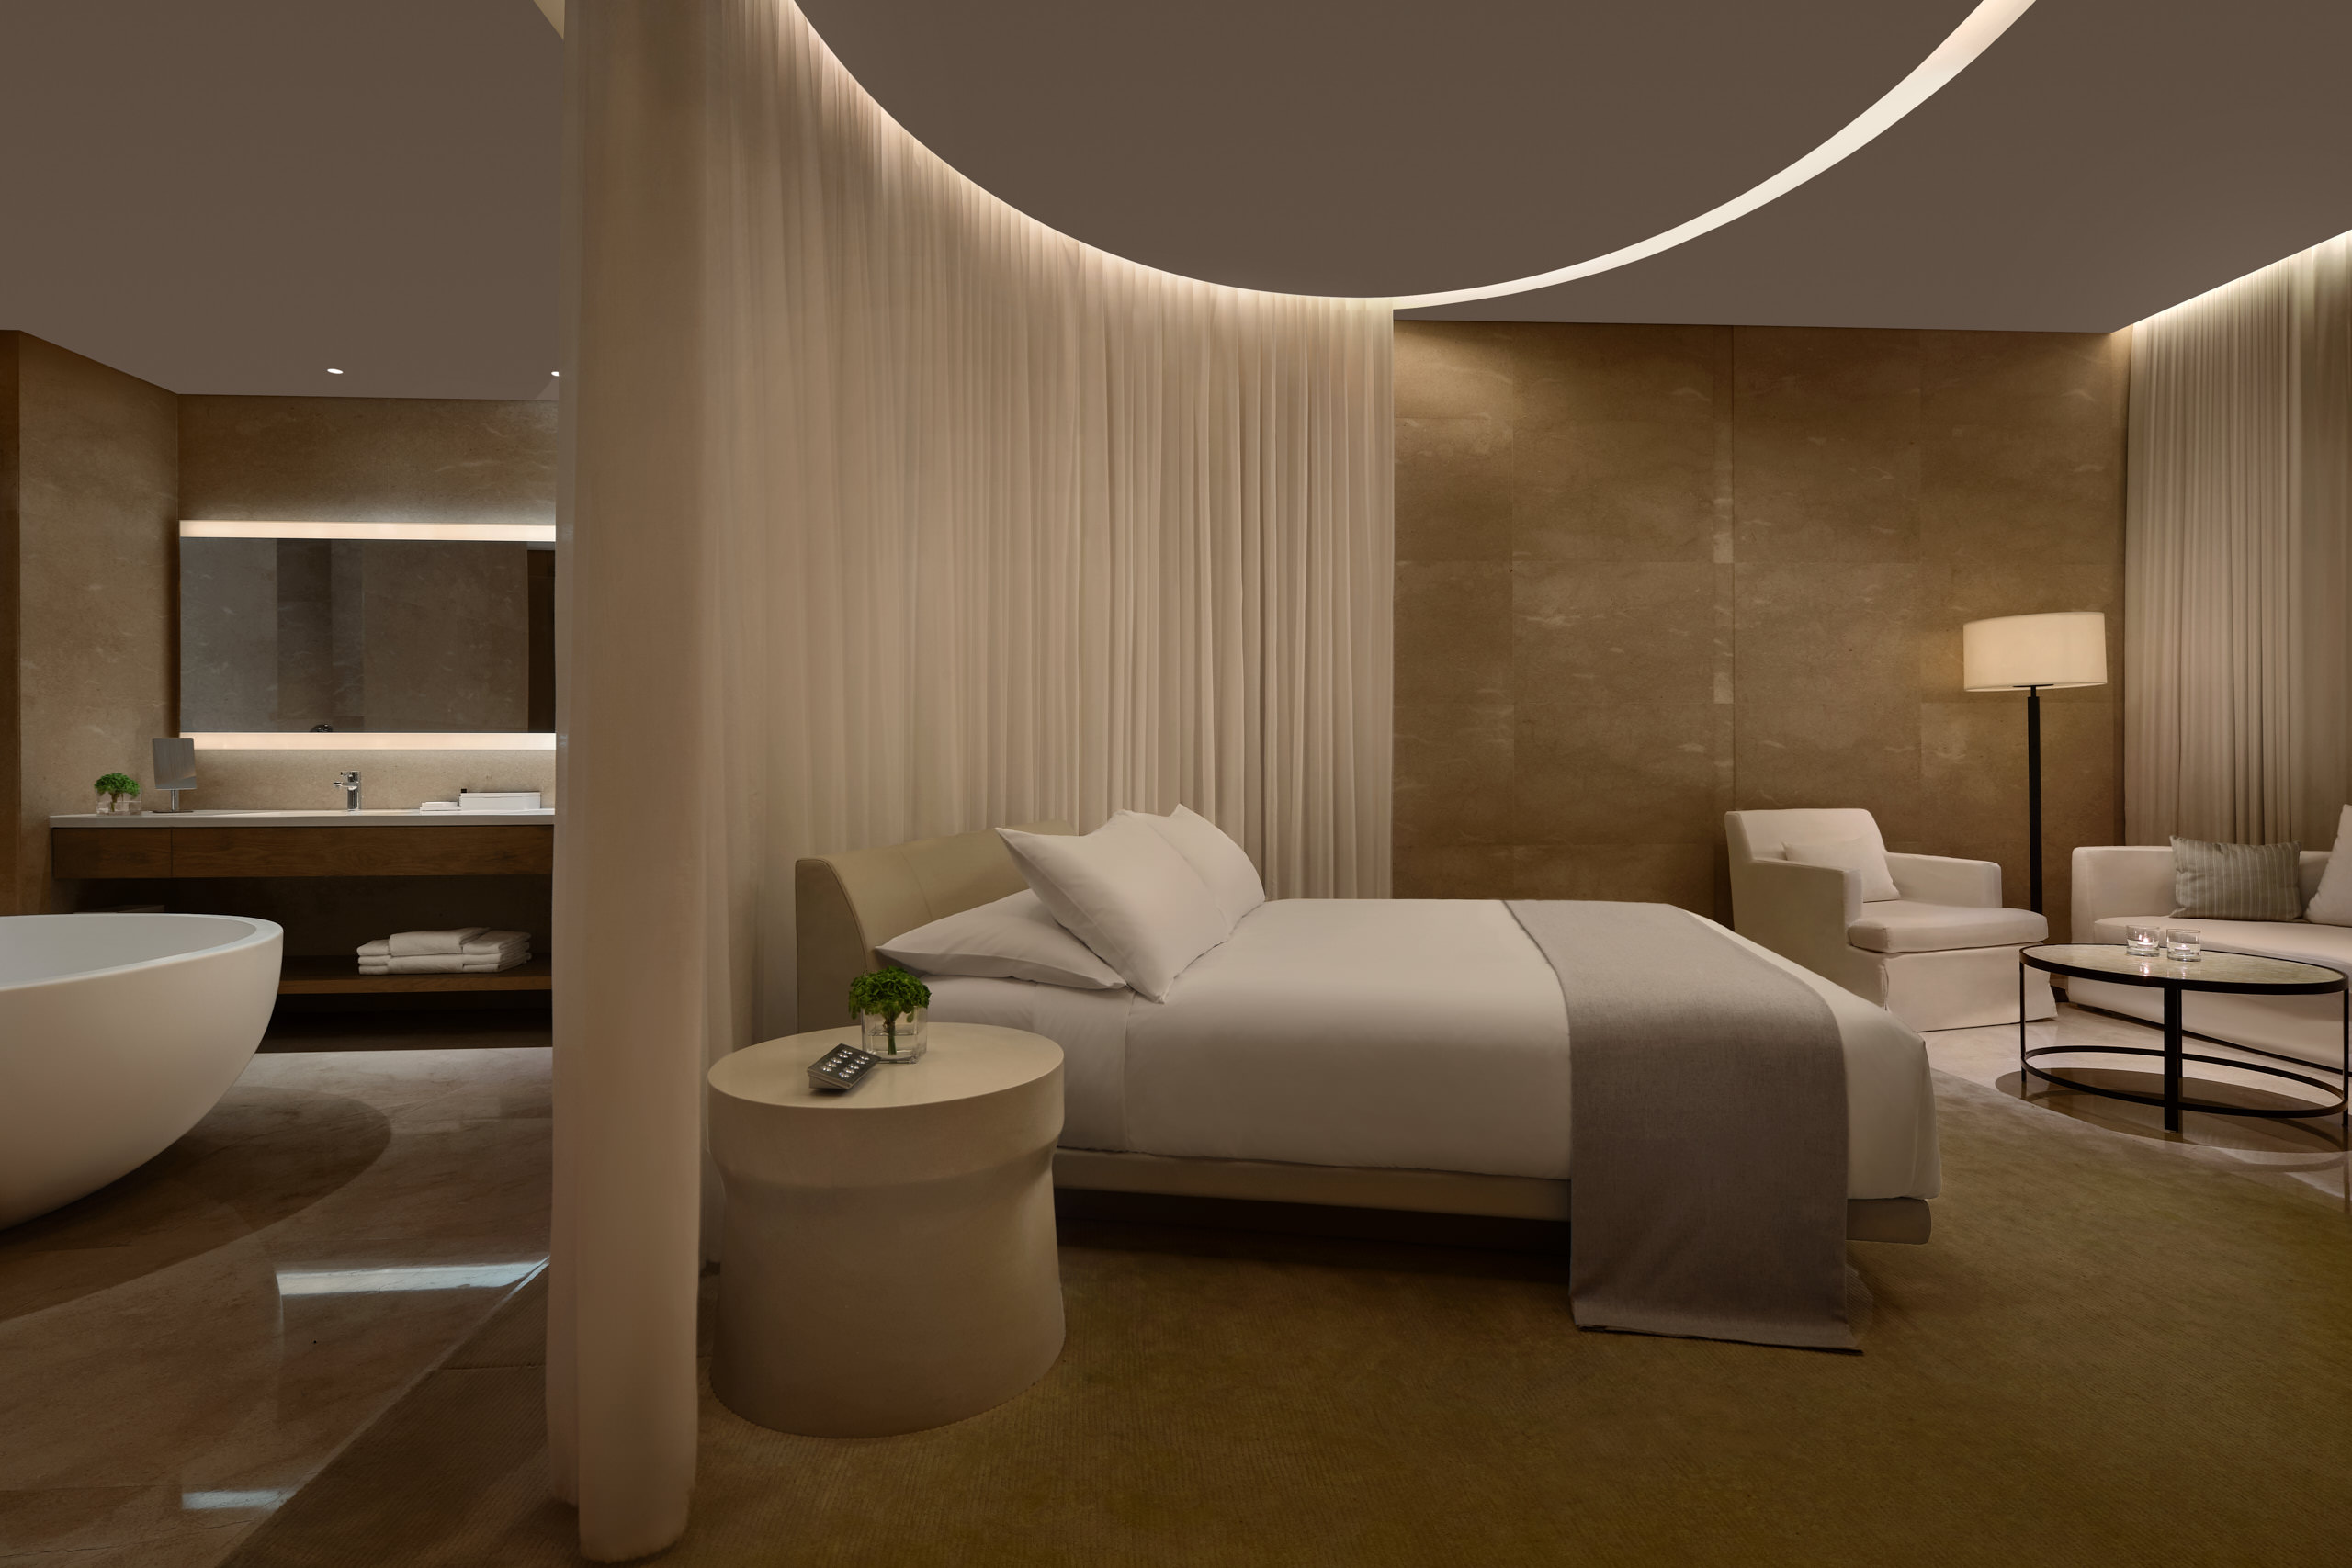 Night view of loft hotel room with romantic soft lighting. Bedroom and bathroom divided by curtain at hotel in sanya, china.